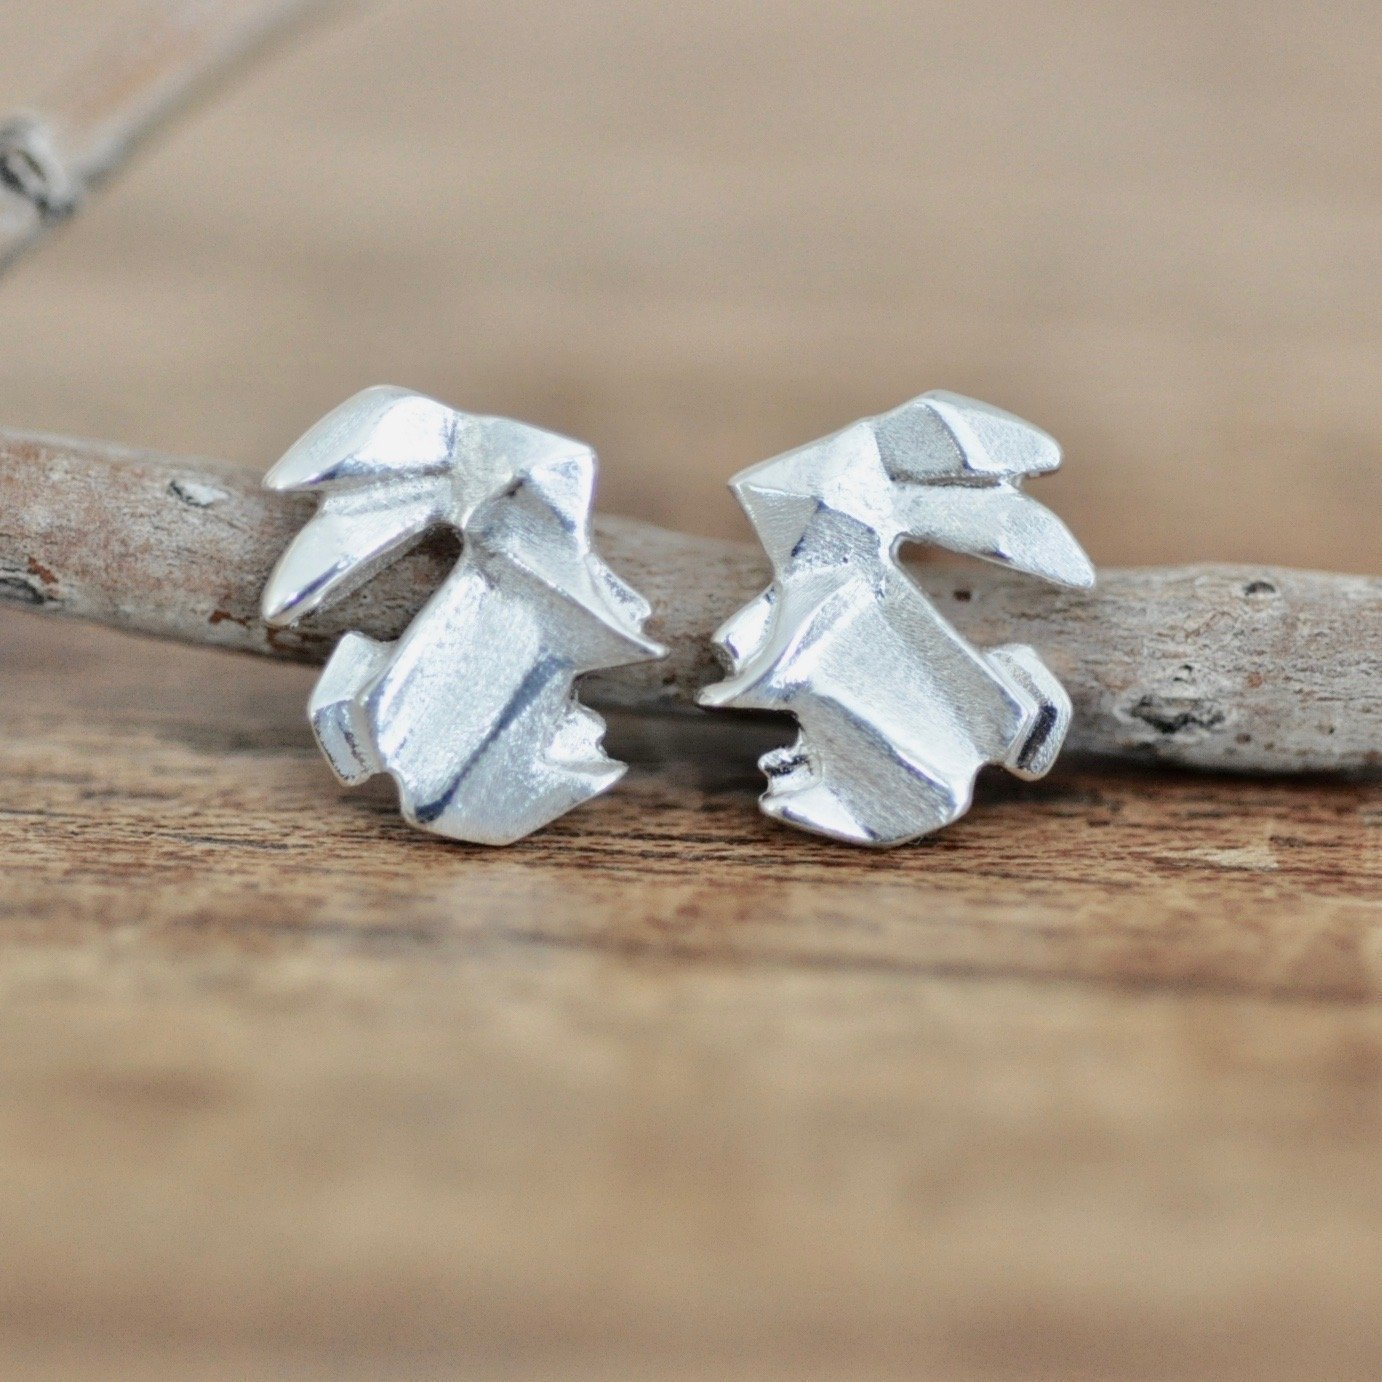 Origami Bunny Rabbit Earrings in Sterling Silver 925 Jamber Jewels